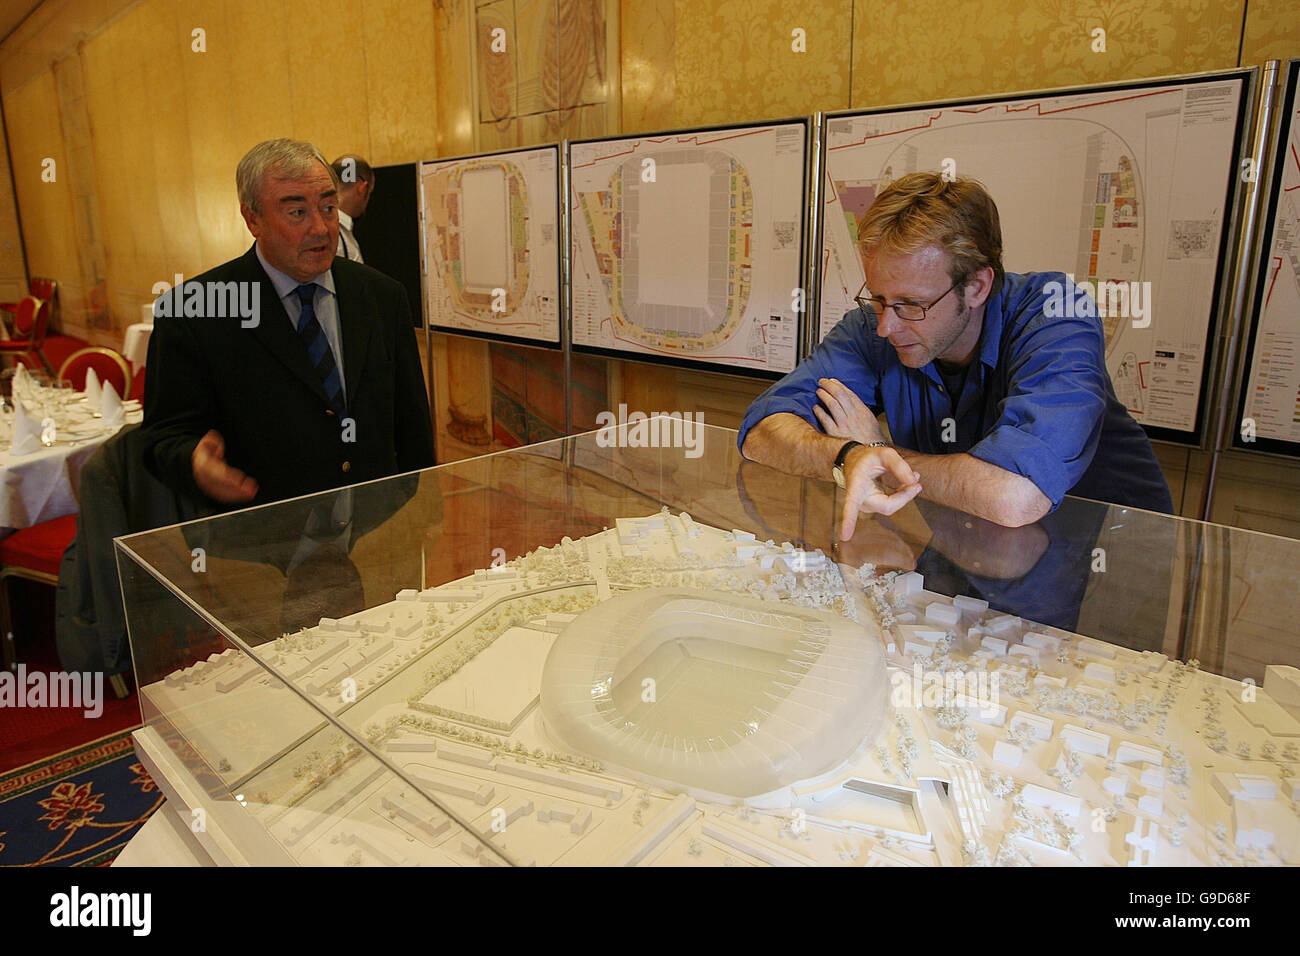 Members of the public and the IRFU were invited to view the Scale model of the new design for Lansdowne Rd Stadium - Stock Image